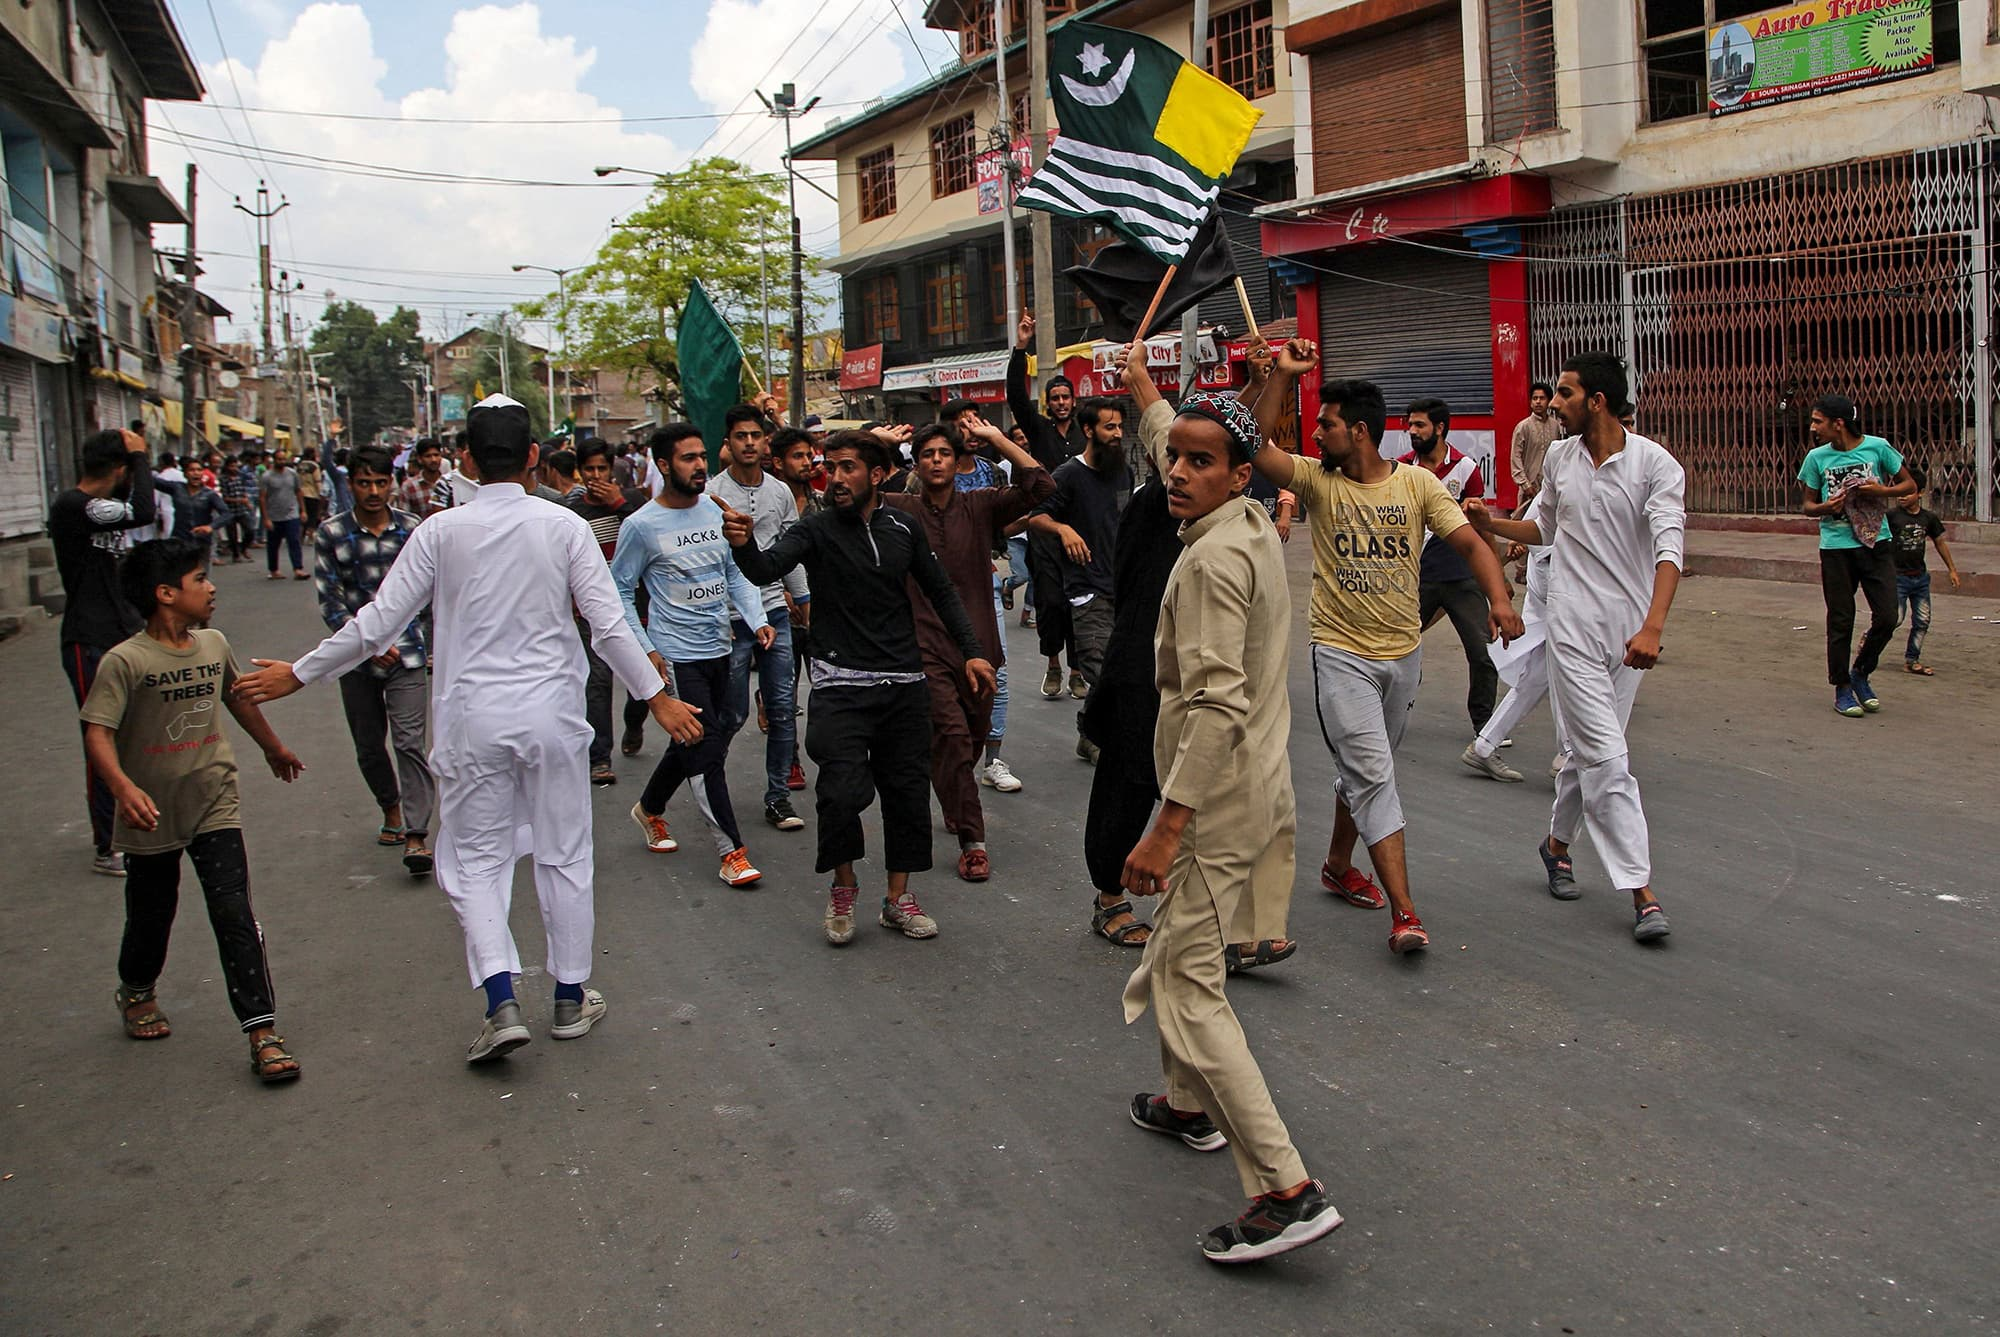 Kashmiris shout pro-freedom slogans during a protest in Srinagar under curfew. ─ AFP